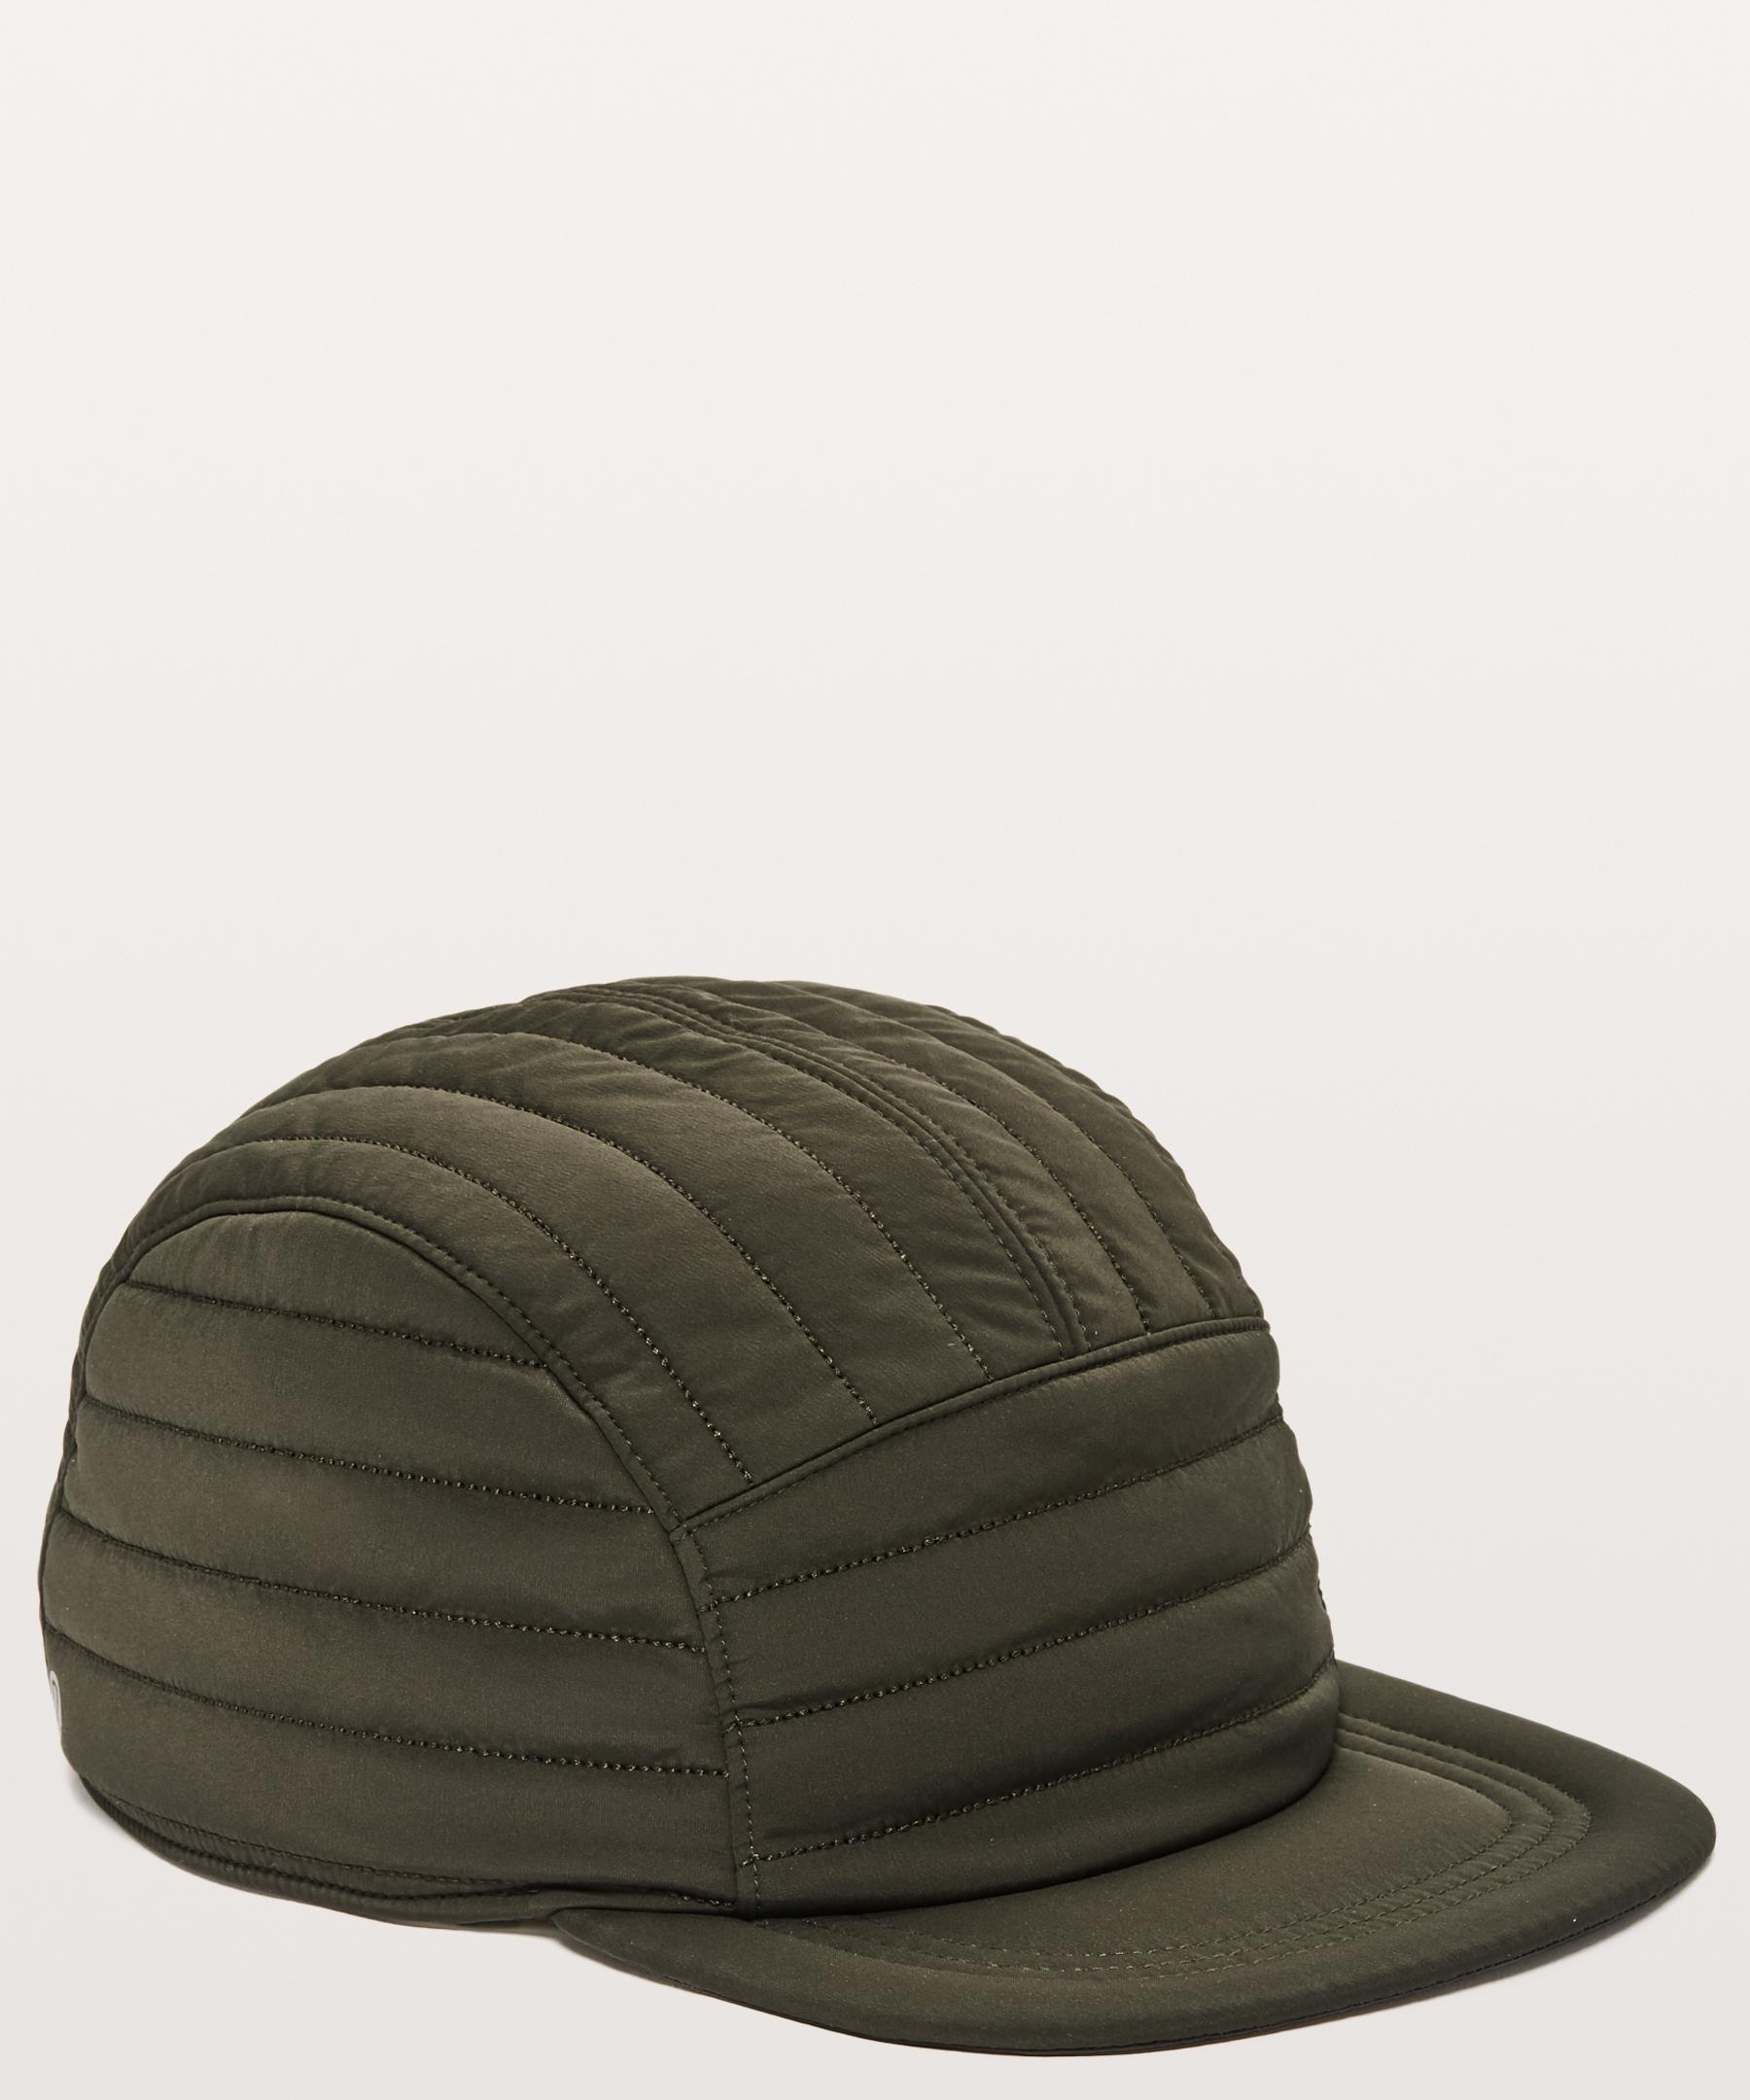 1d53903ec895e Gallery. Previously sold at  lululemon athletica · Men s Wool Fedoras Men s  Beanies ...